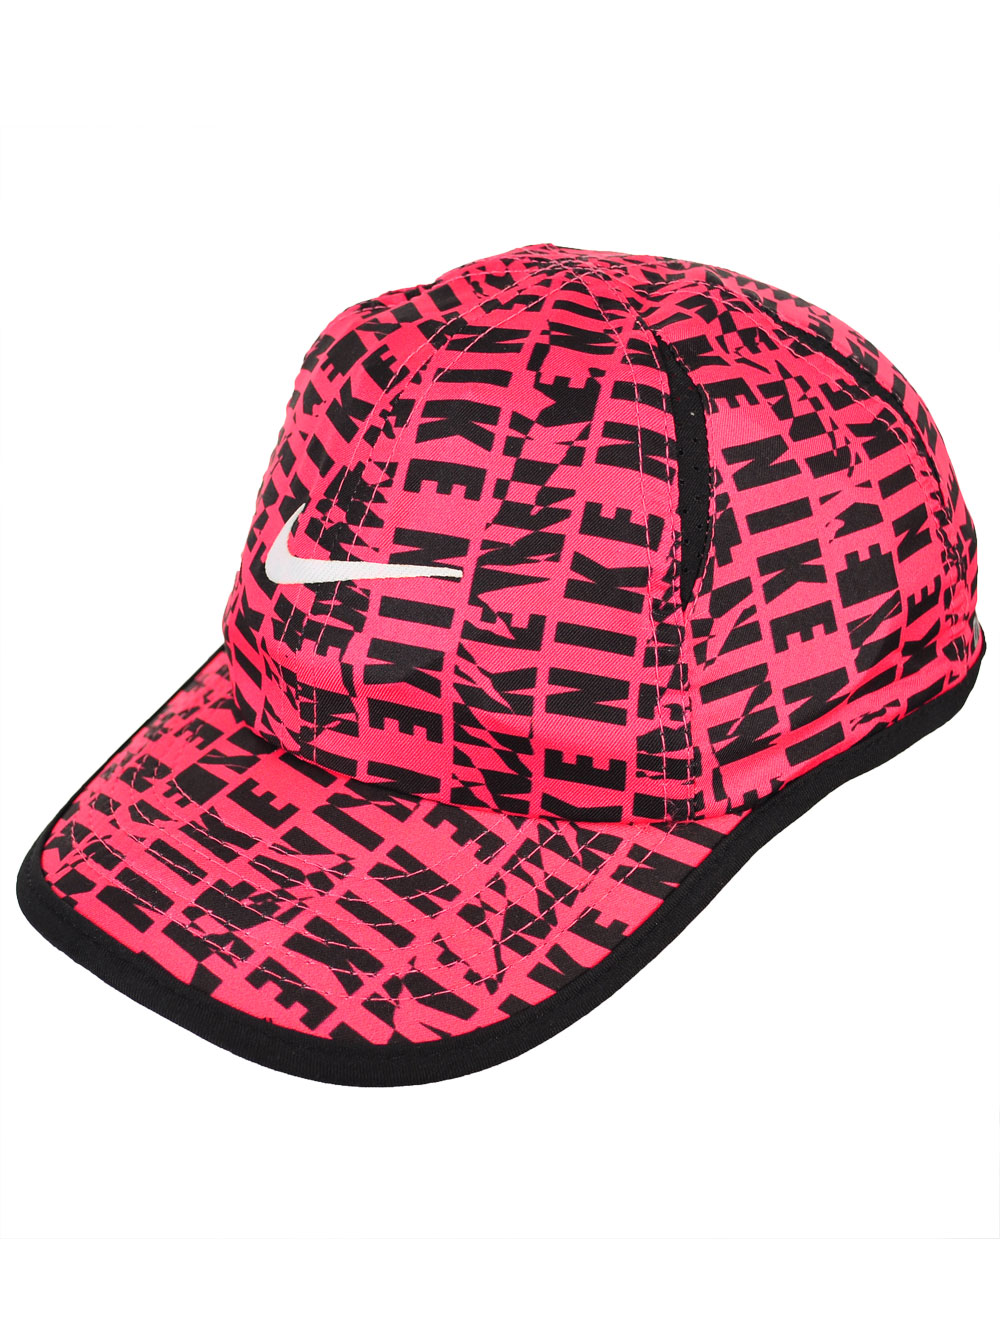 a6edb40705 Girls' Dri-Fit Baseball Cap by Nike in Hyper pink/black from Cookie's Kids